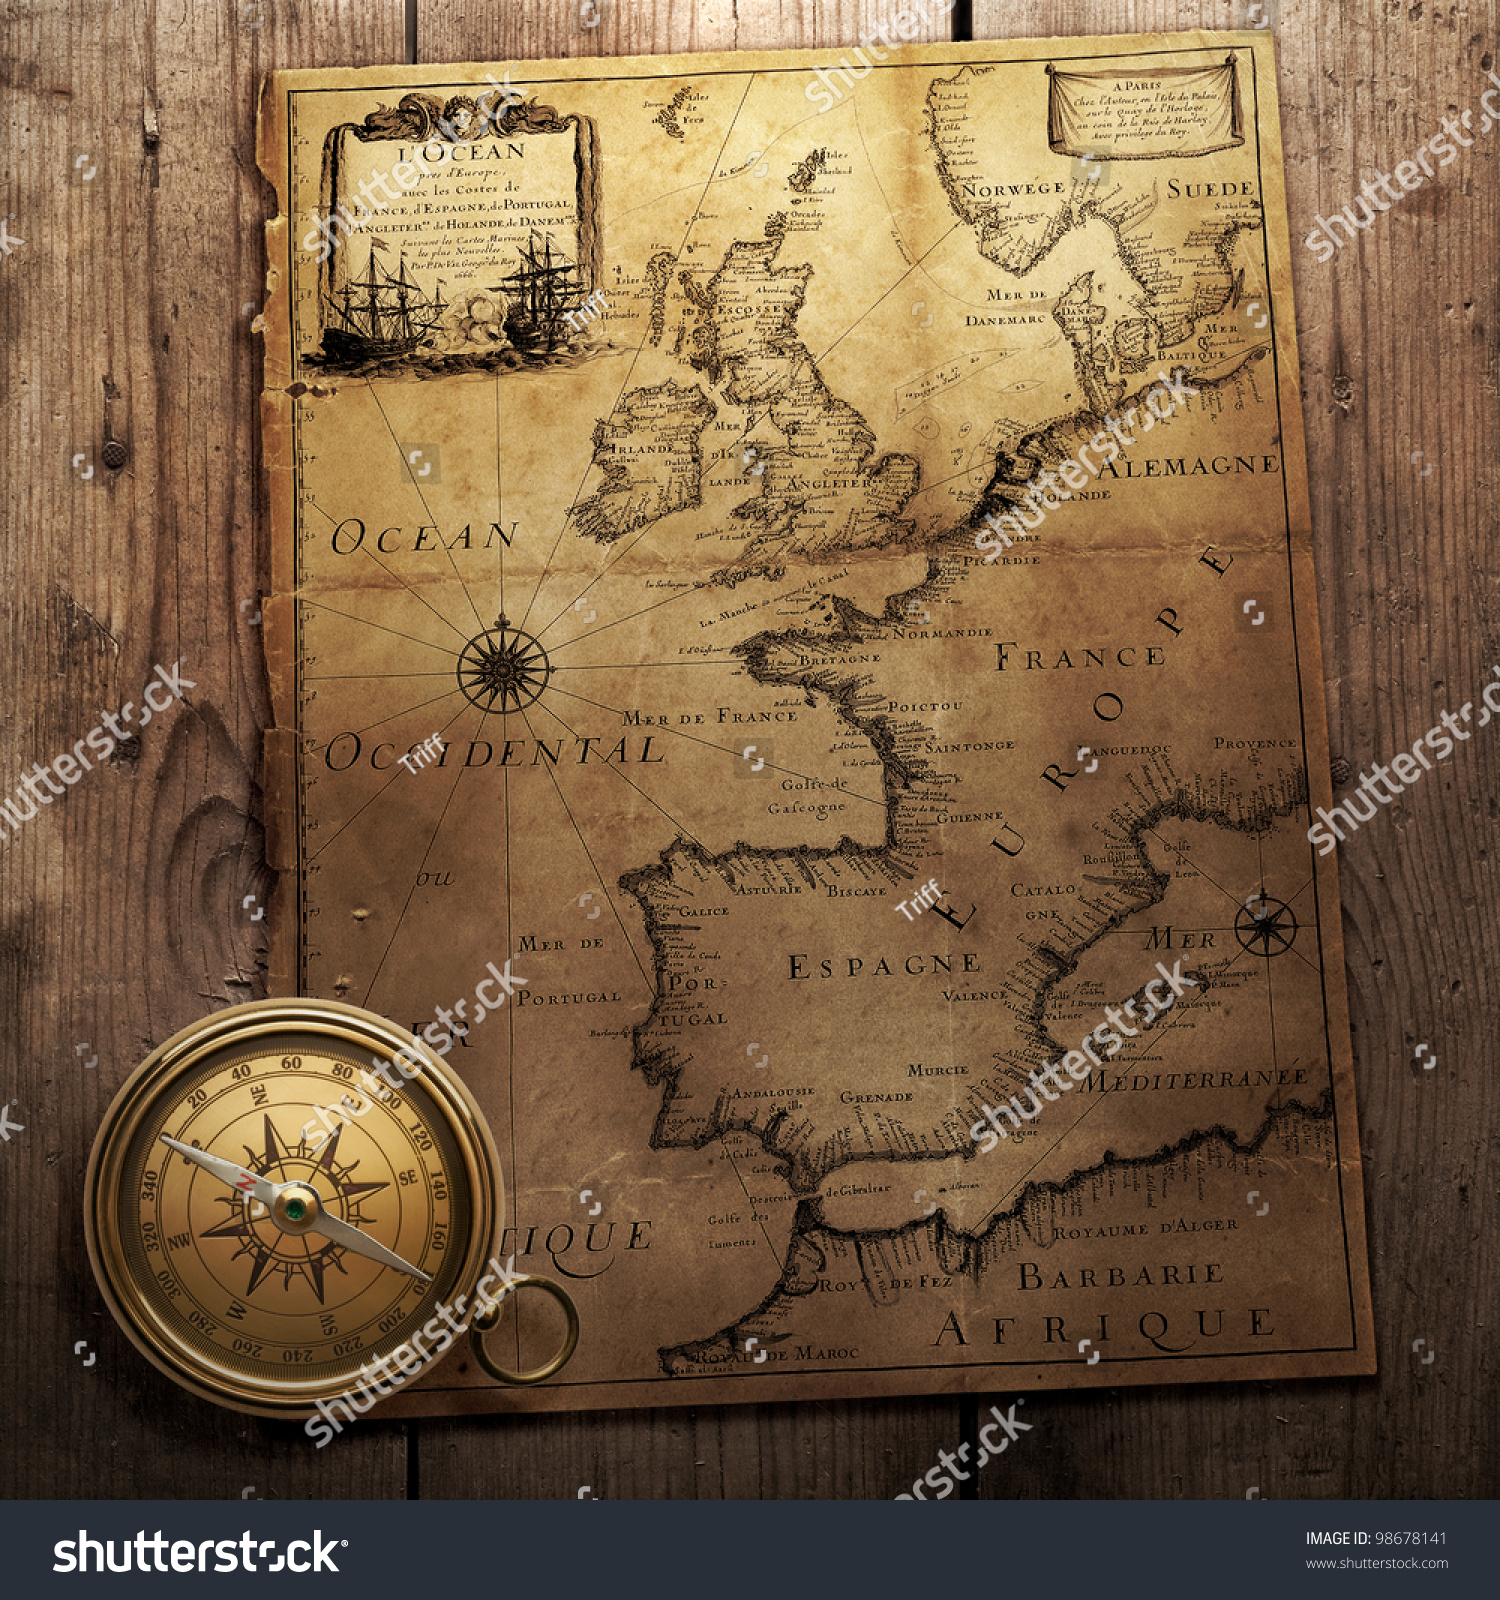 Old compass on vintage map france foto de stock libre de regalas old compass on vintage map france spain england portugal holland gumiabroncs Gallery